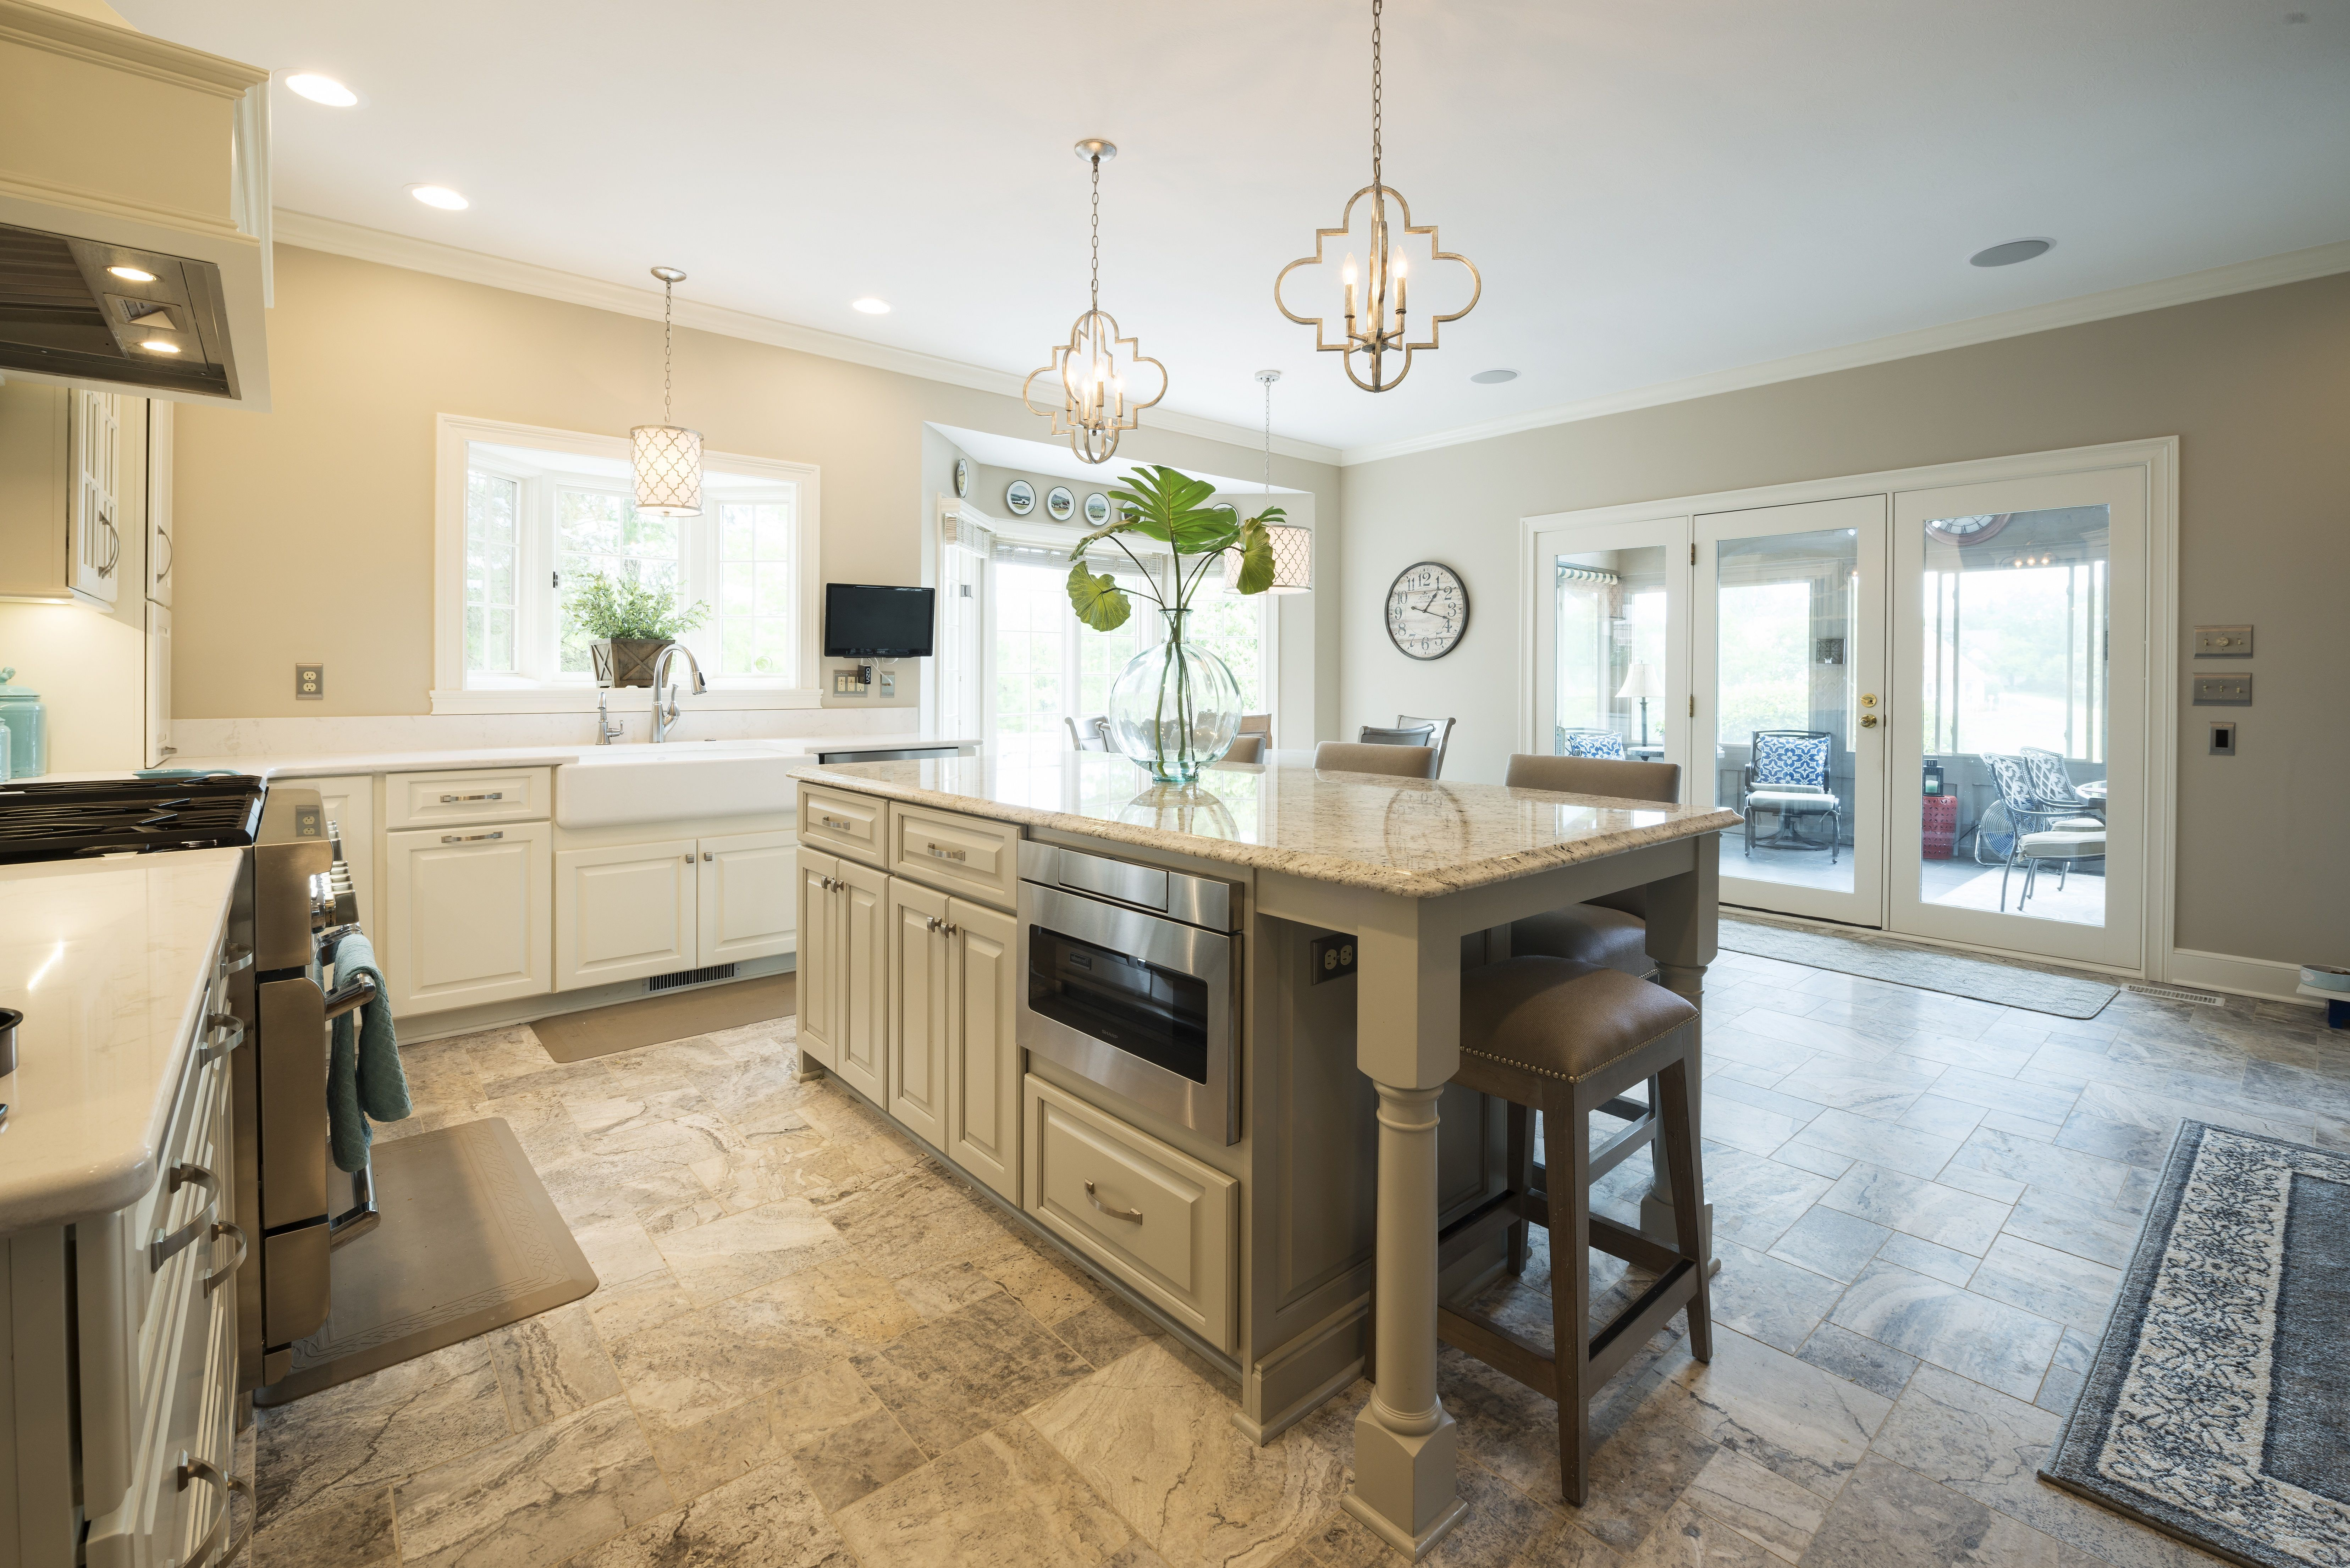 Modern kitchen remodel in indiana pendant lighting painted